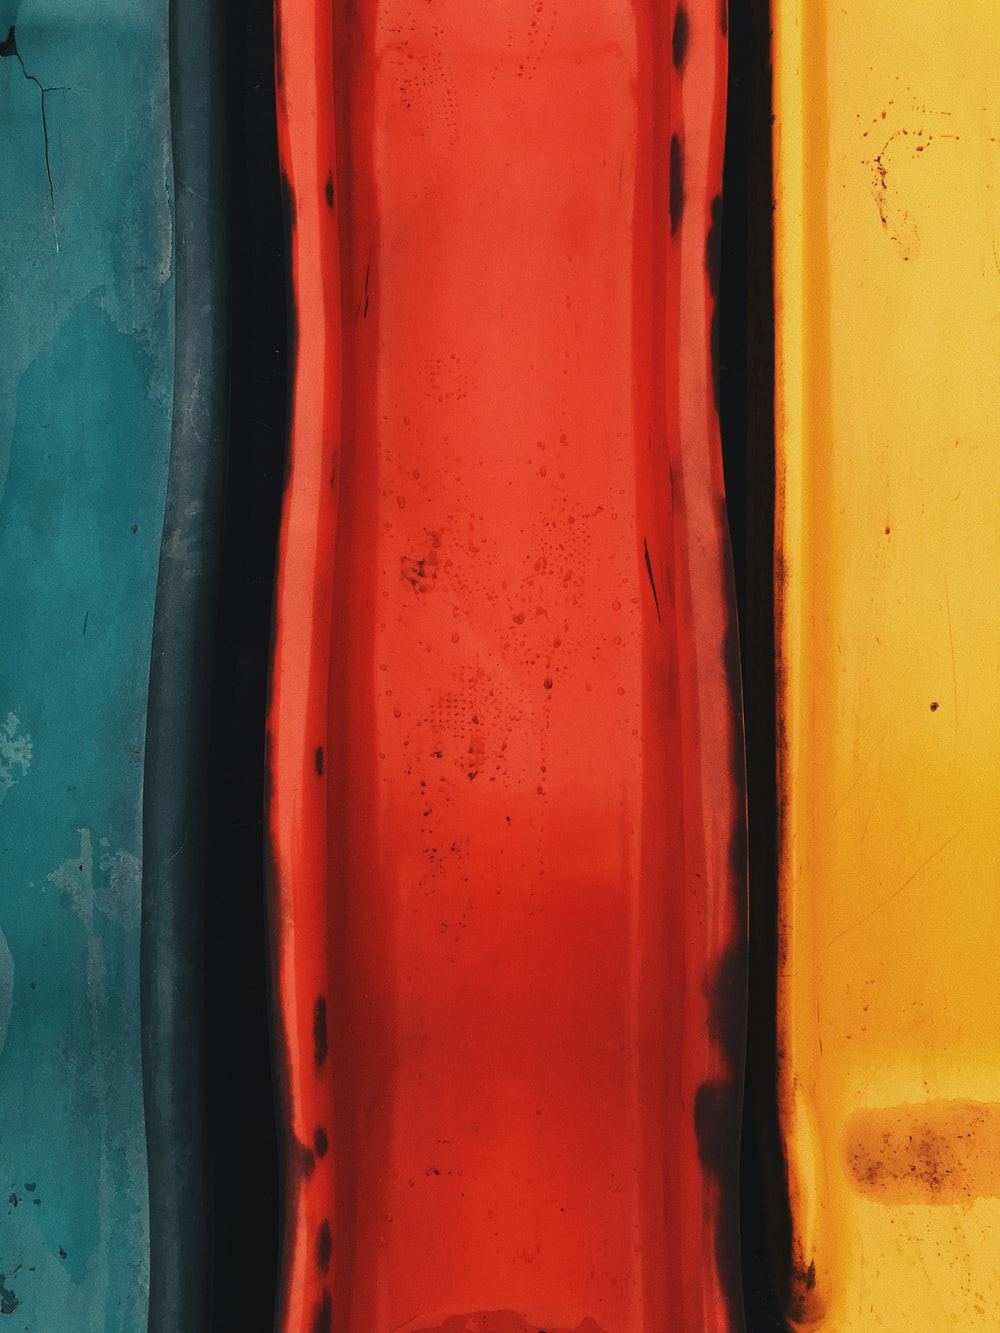 red yellow and blue paint